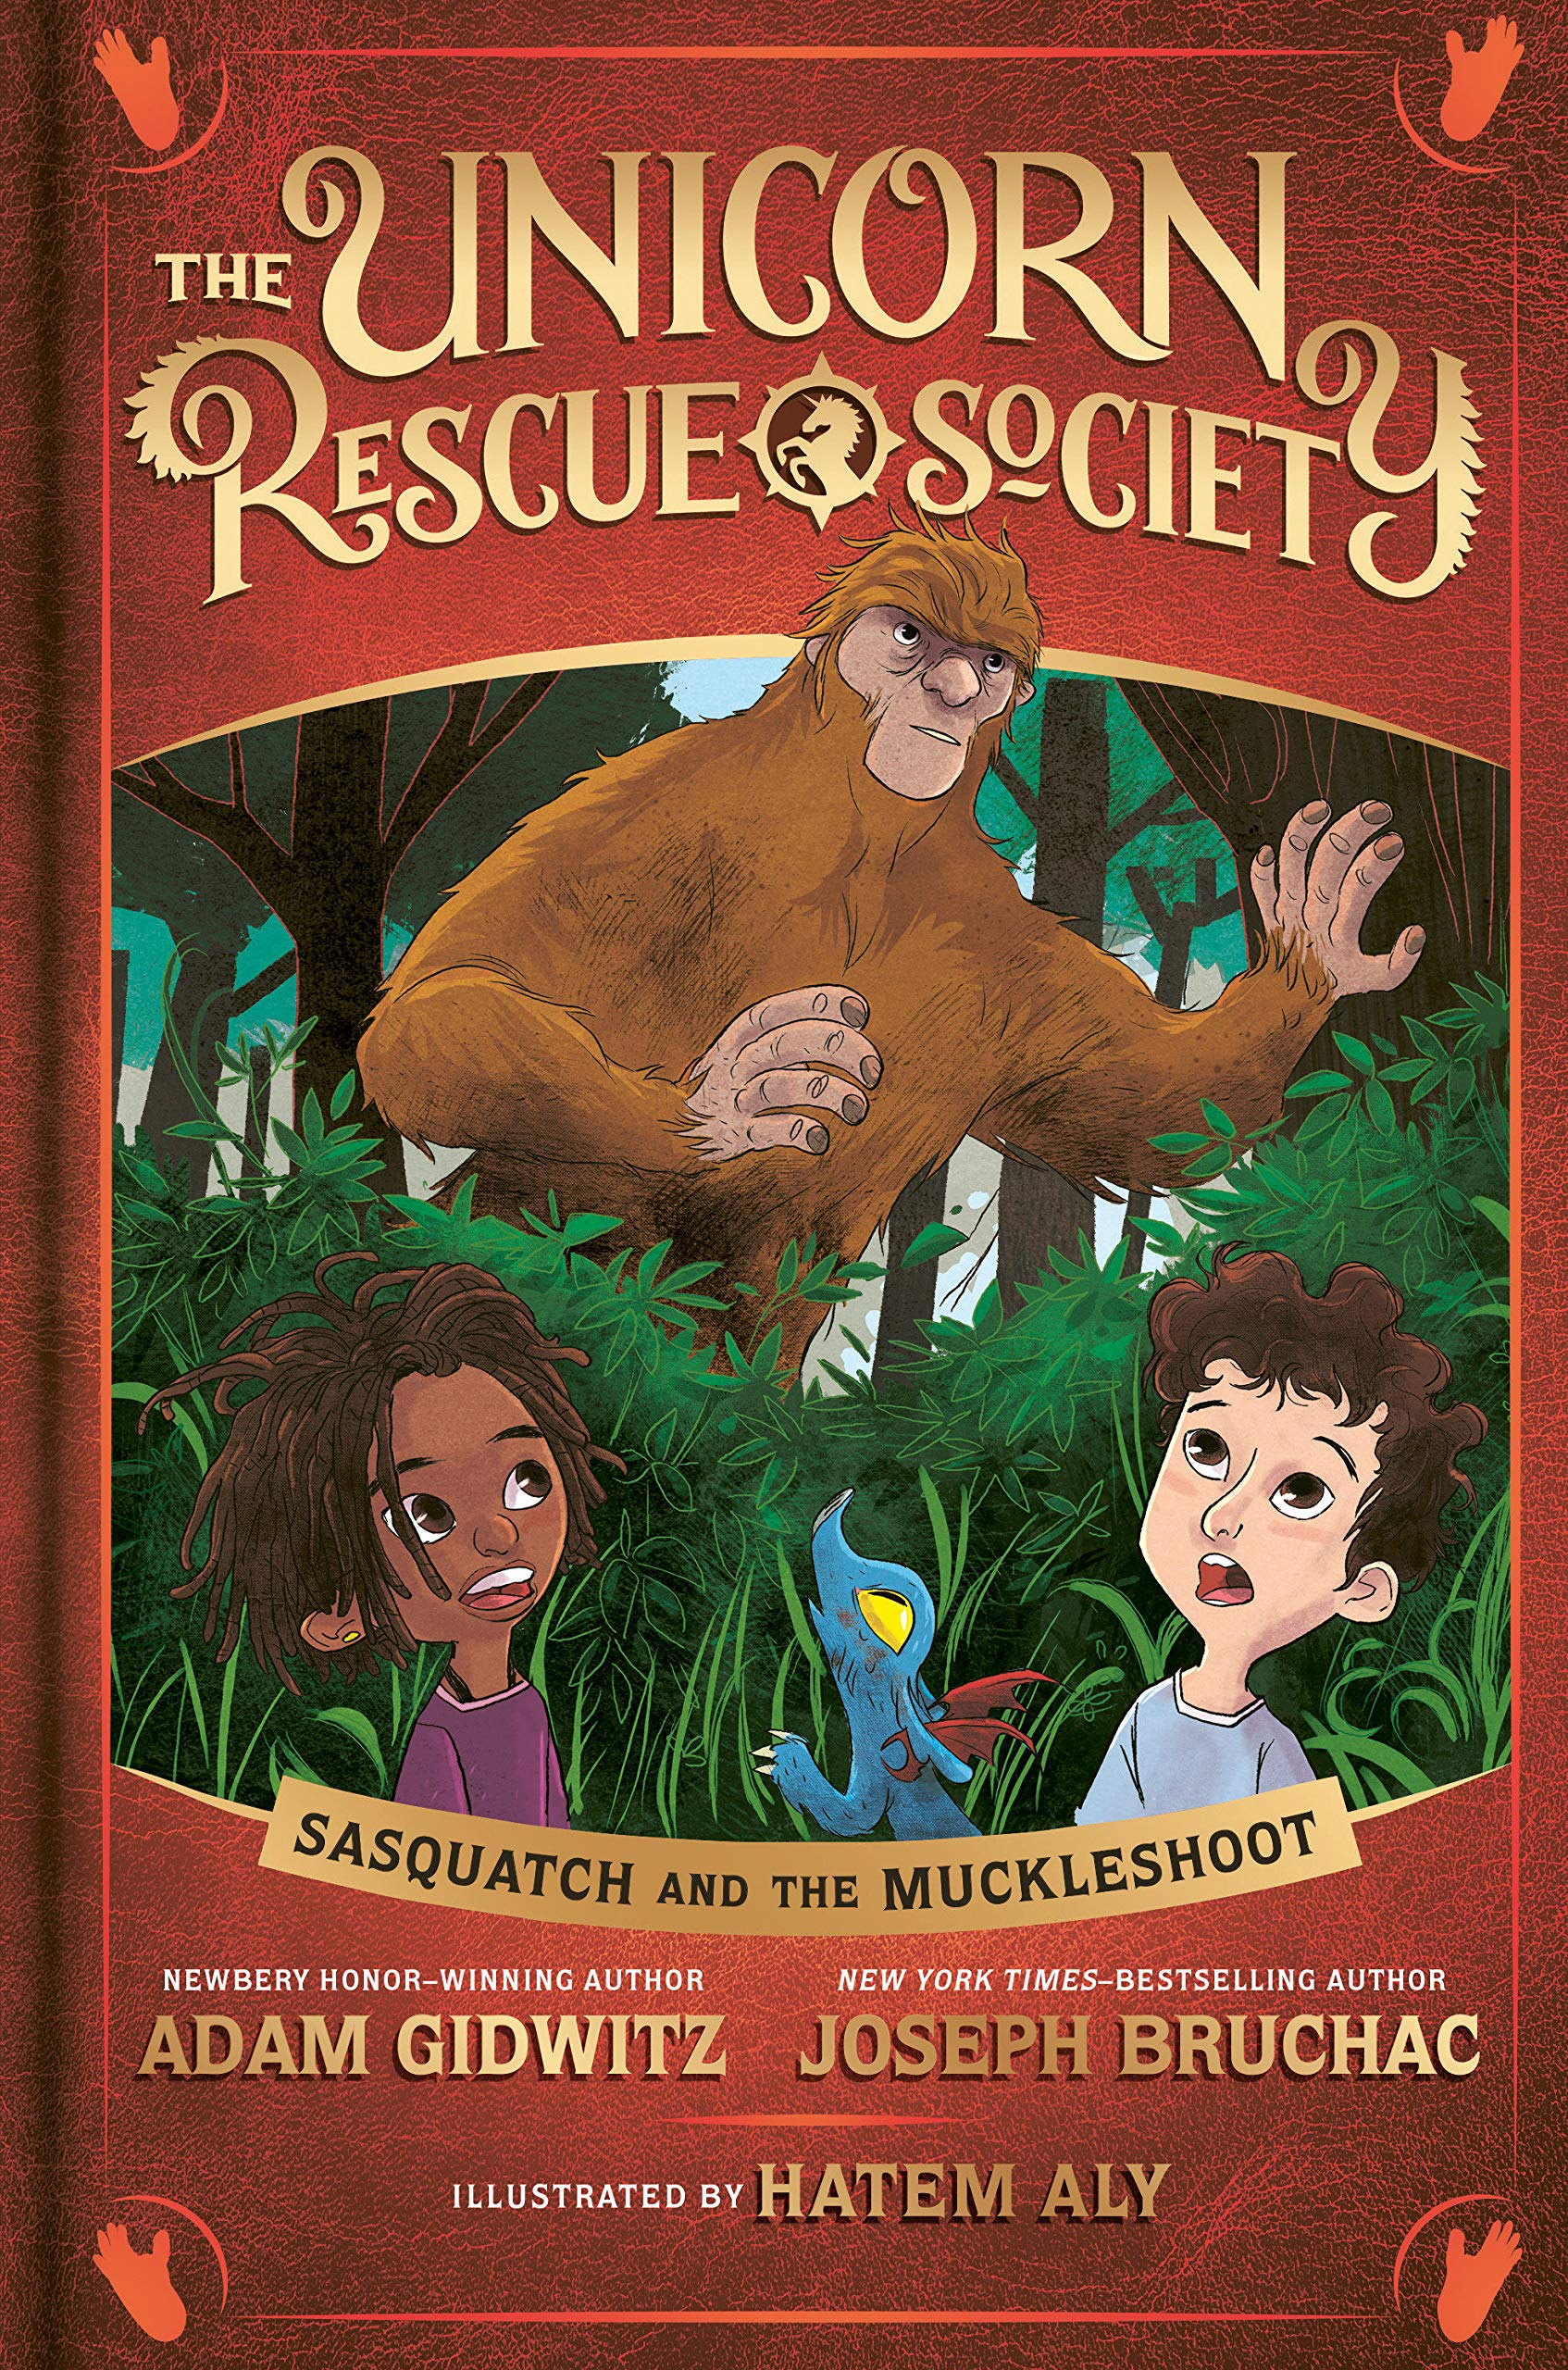 Sasquatch and the Muckleshoot (The Unicorn Rescue Society)